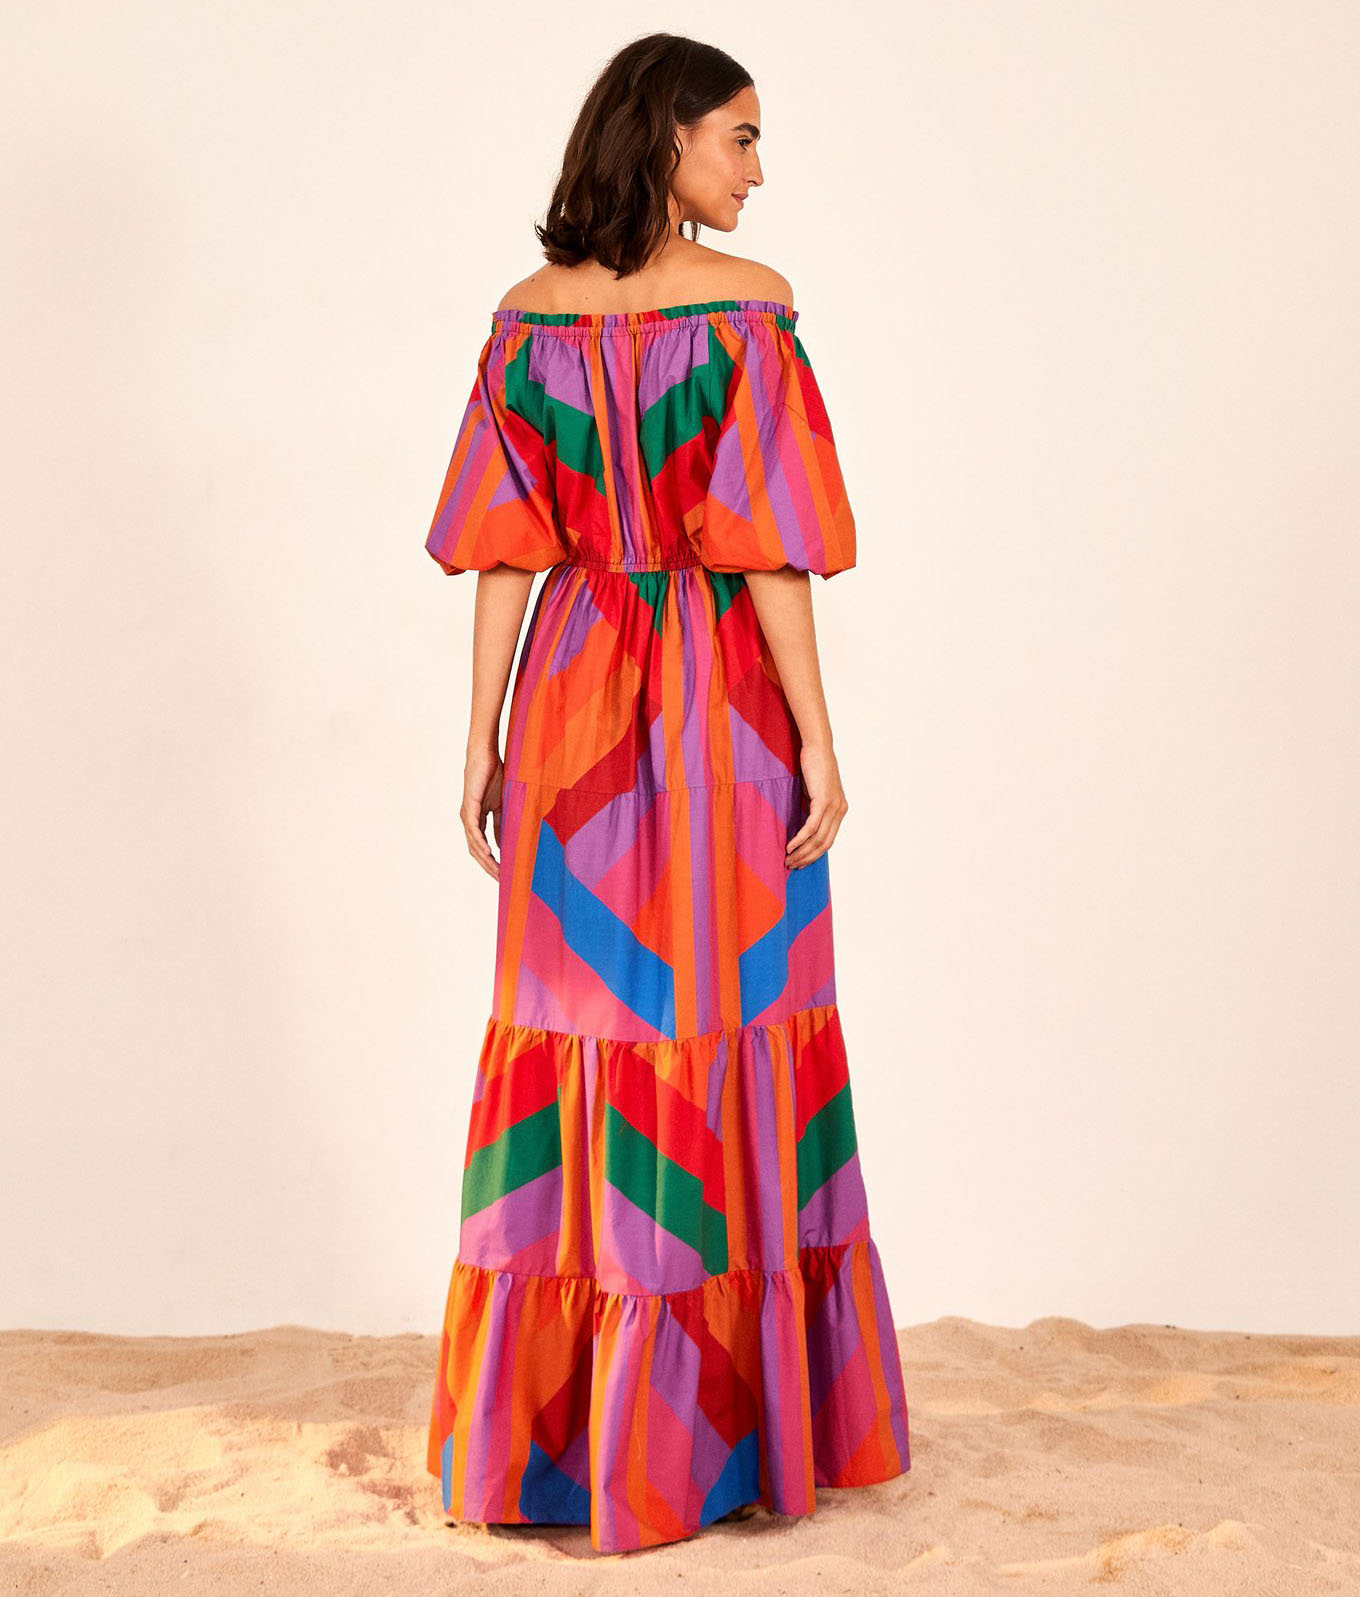 Farm Rio, the woman-owned Brazilian brand, is to blame for my love of stunning colorful dresses. Here are 11 of their best. Are you ready for some Latina joy?